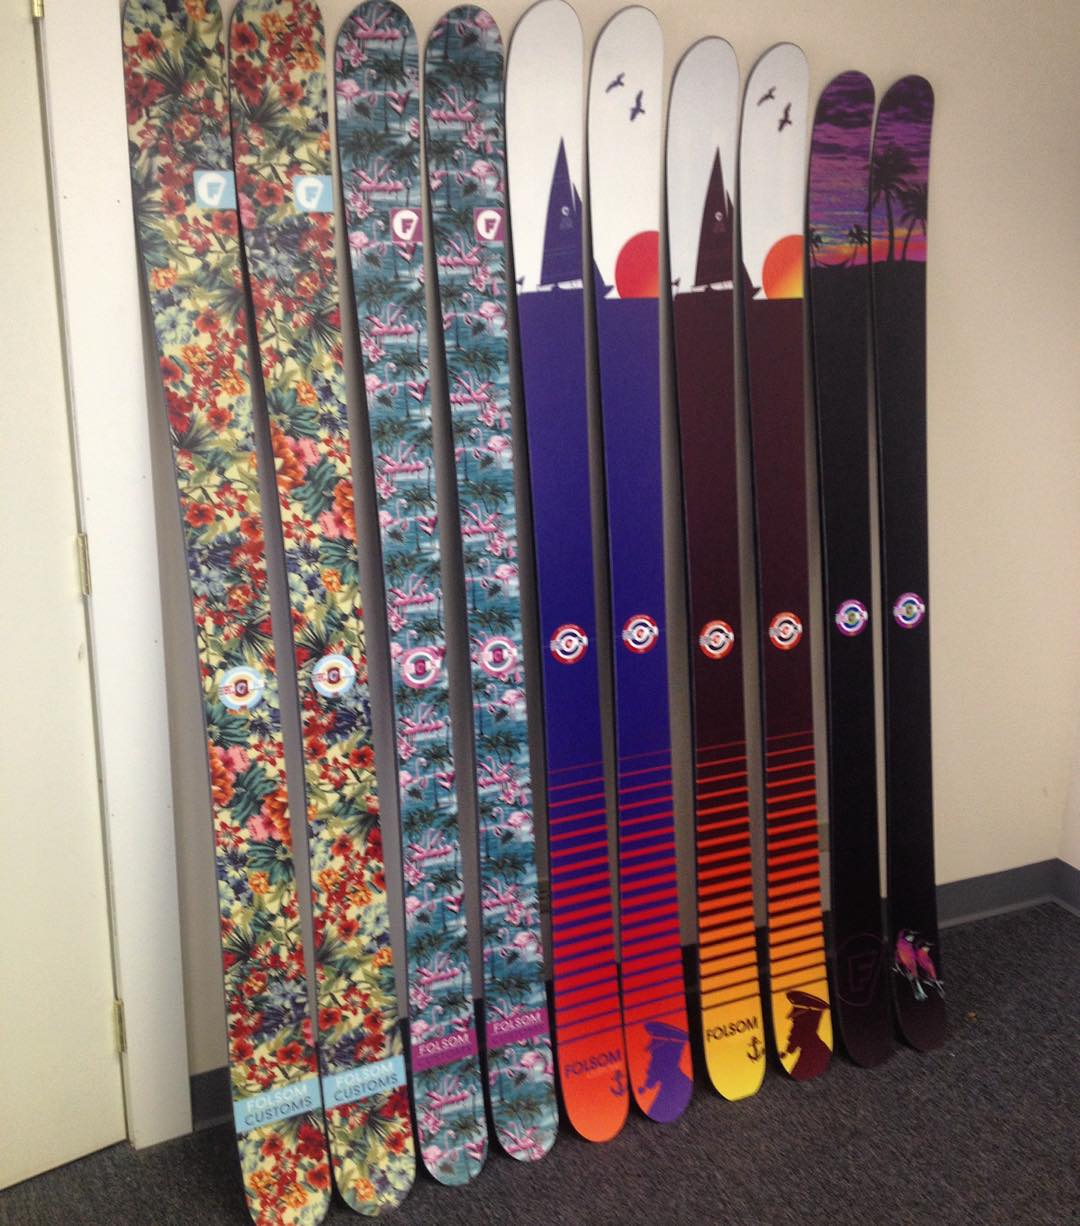 Our @backcountrycom line up available now! Left to right Trophy, Trigger II, Primary, Primary Tour, and Completo. Make your Friday even better by getting some fresh skis for the season! #gettropical #goatworthy #madeintheusa